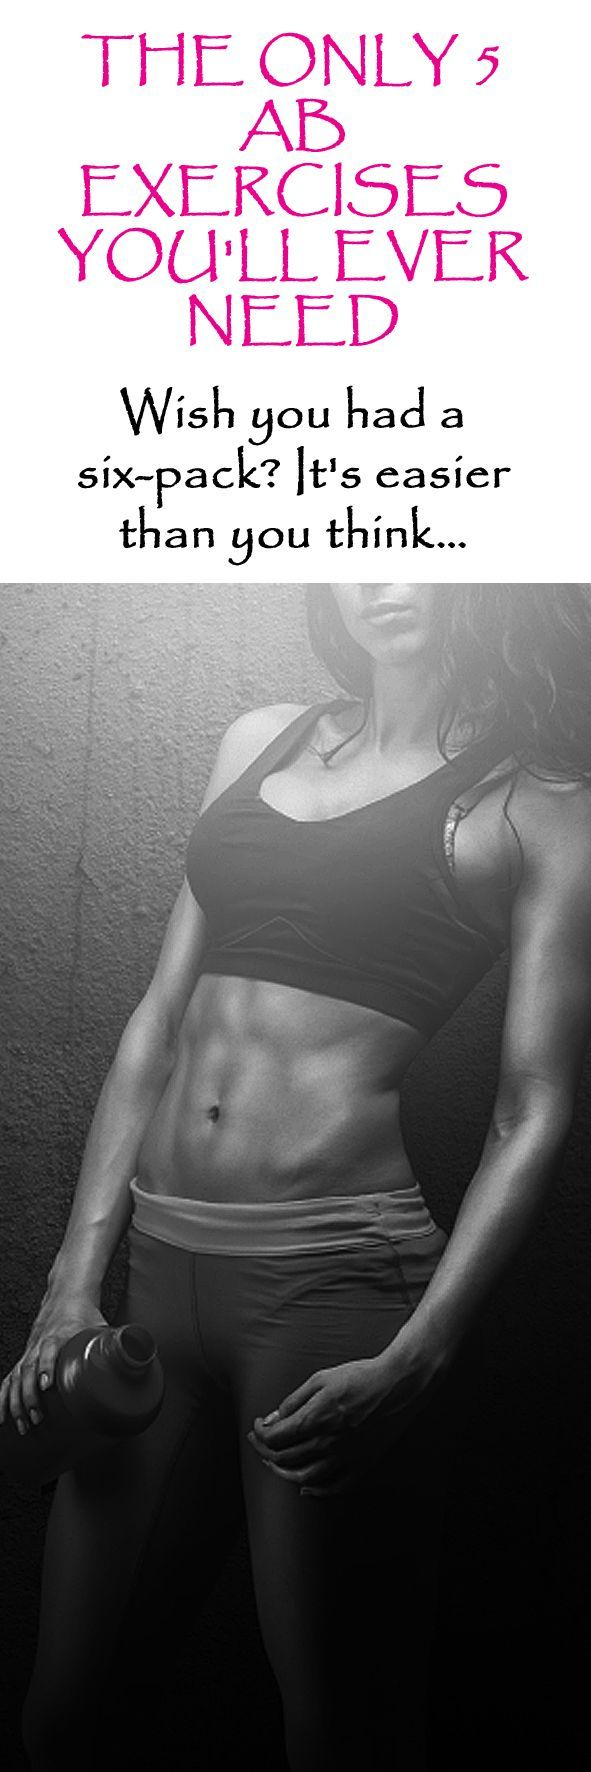 The Only 5 Ab Exercises You'll Ever Need… #abworkout #sixpack #abs #coreworkout #abexercise